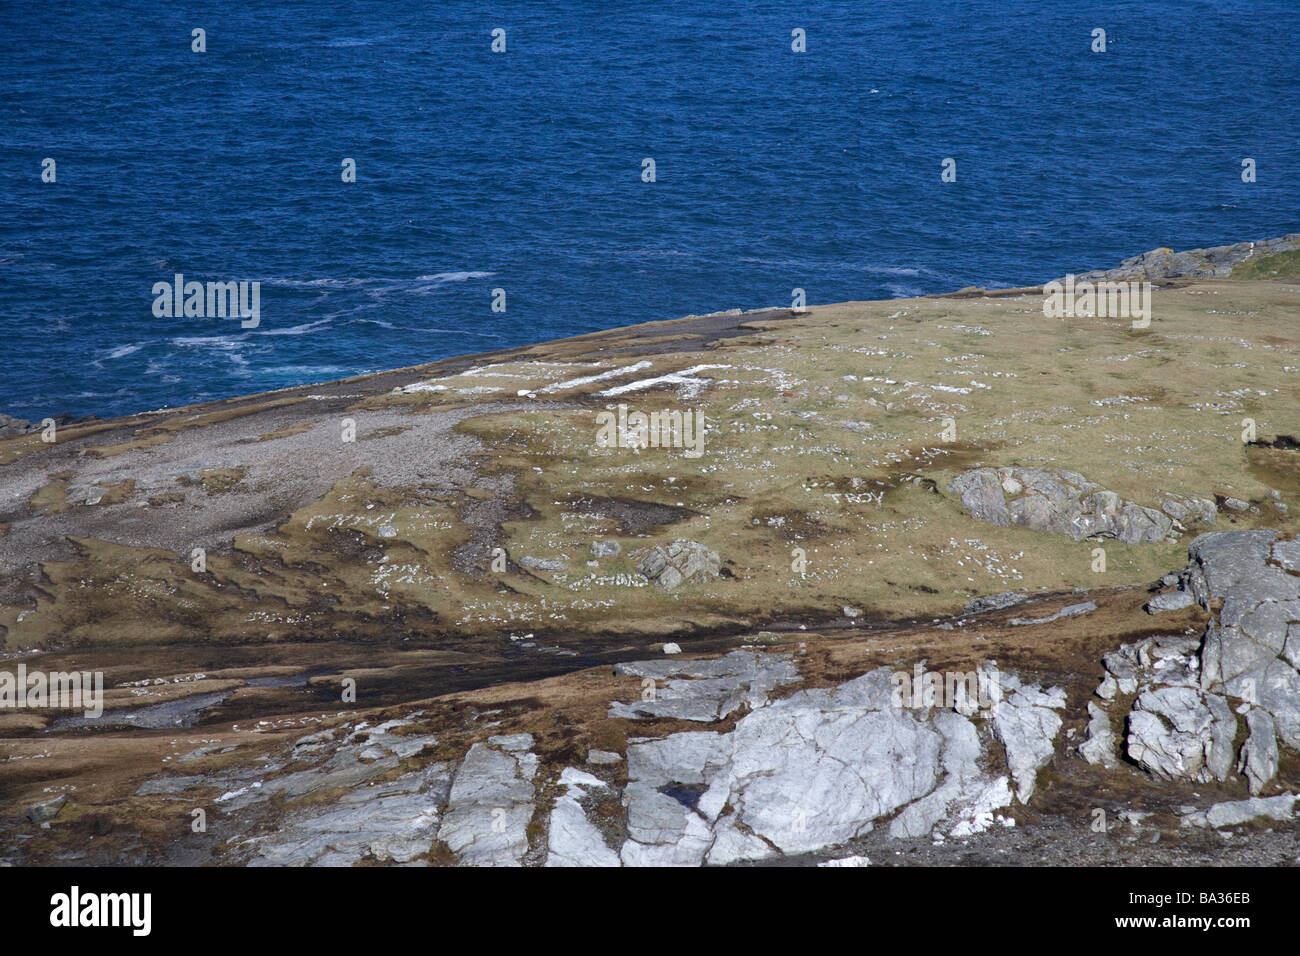 rocky outcrop at malin head inishowen peninsula county donegal republic of ireland irelands most northerly point - Stock Image